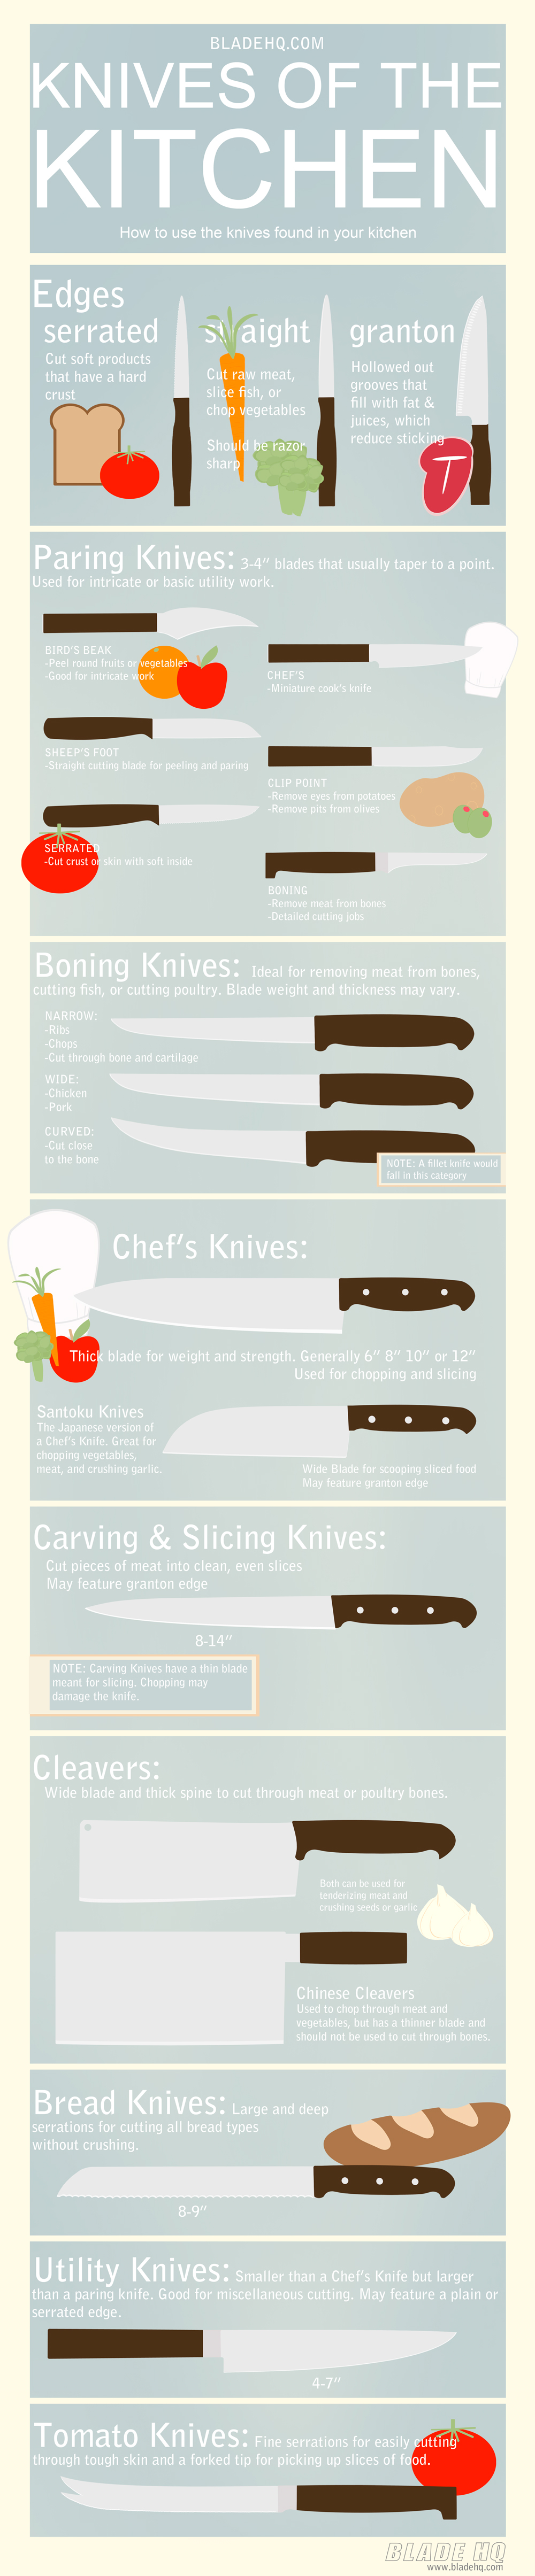 how to use knives learn how to use knives properly with this